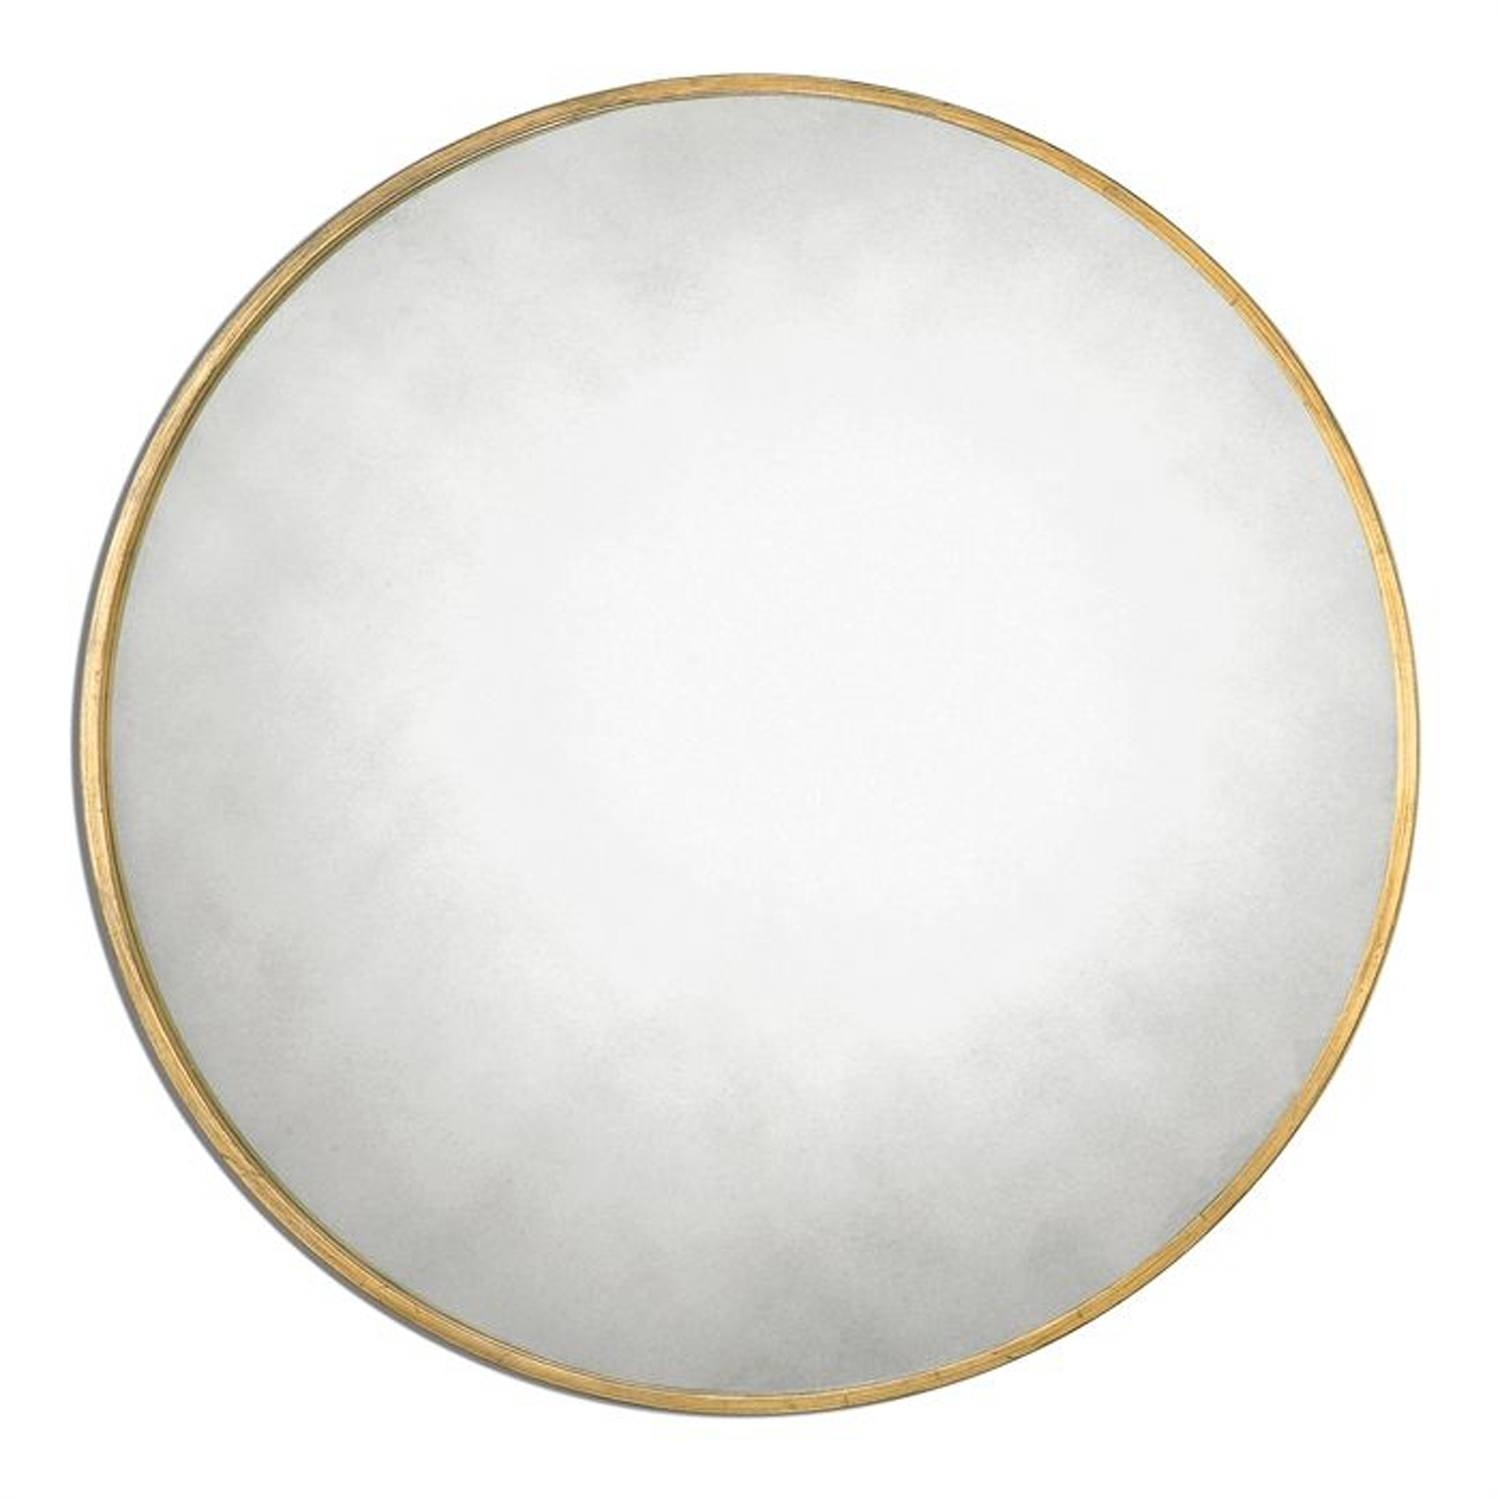 Junius Round Gold Round Mirror Uttermost Wall Mirror Mirrors Home In Large Circular Mirrors (View 16 of 25)